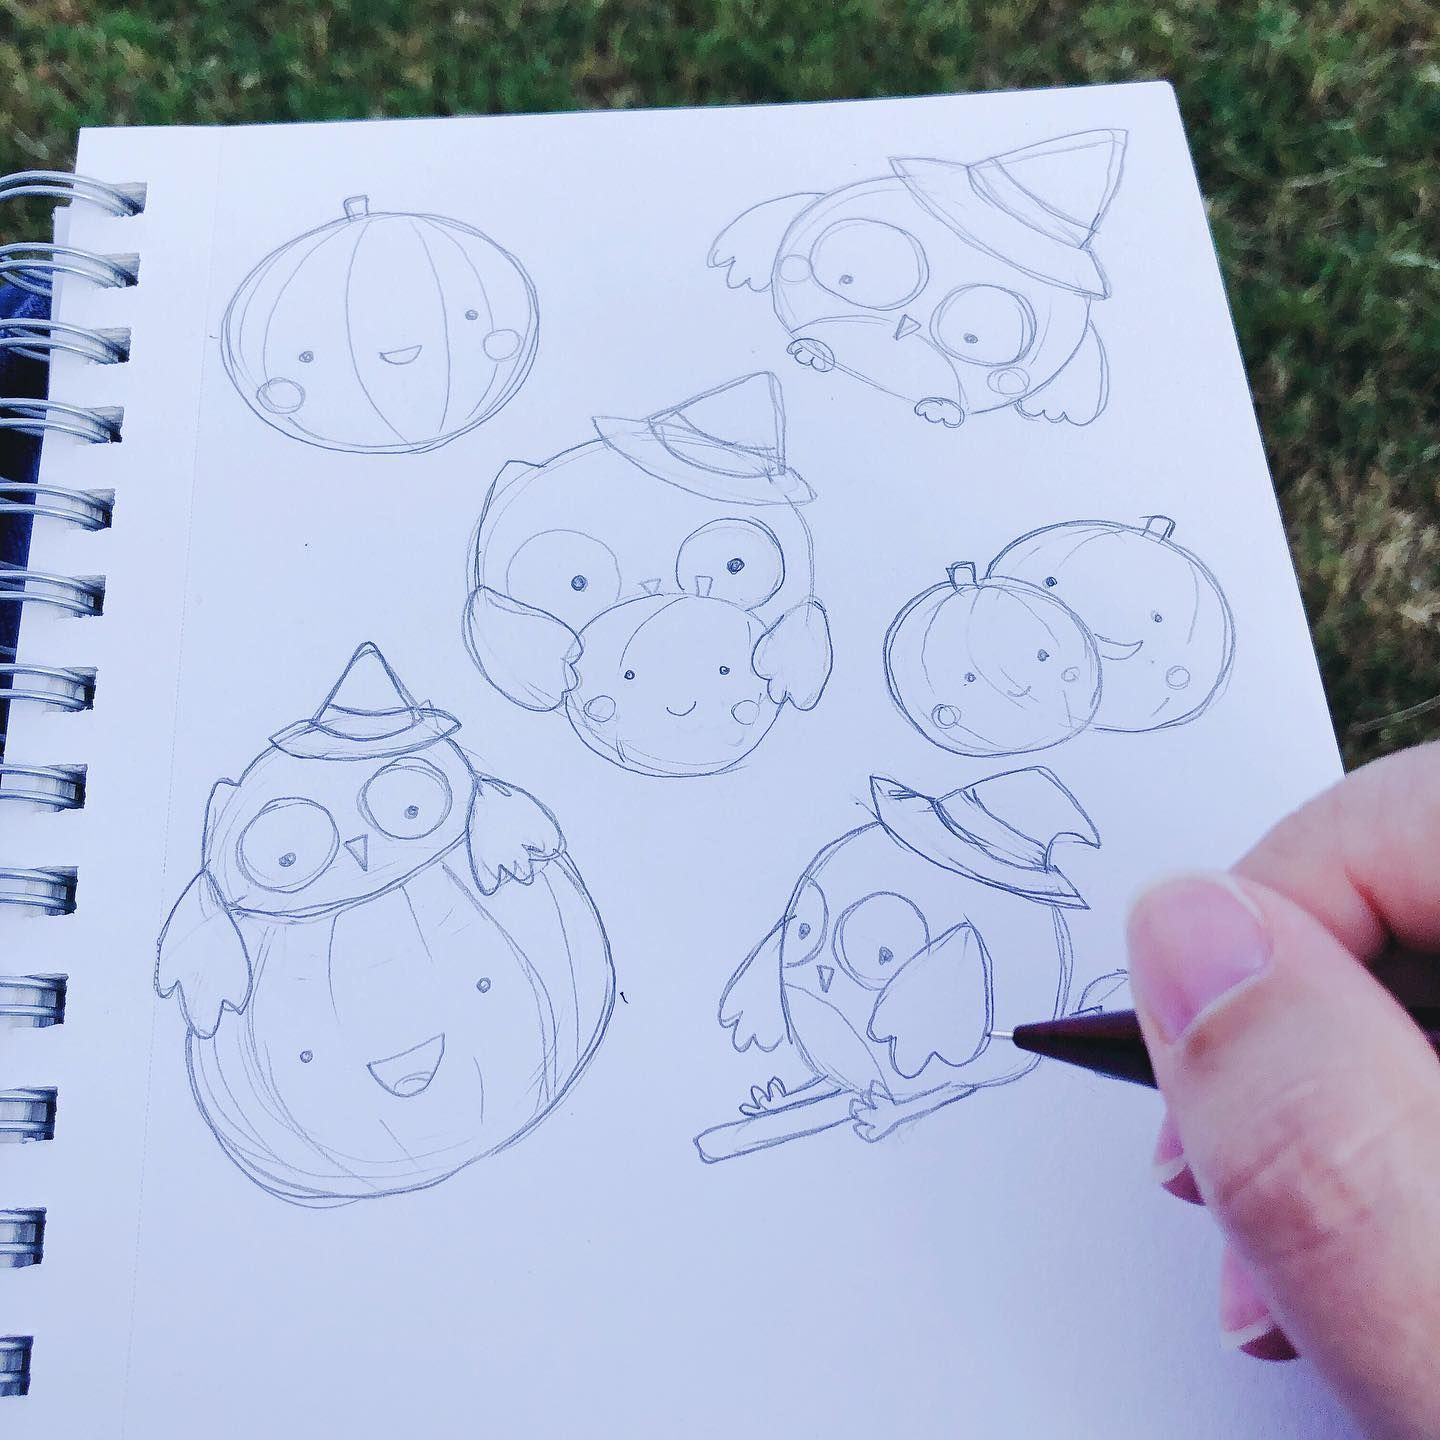 Doodling a Halloween Owl 🦉 sticker set while at my